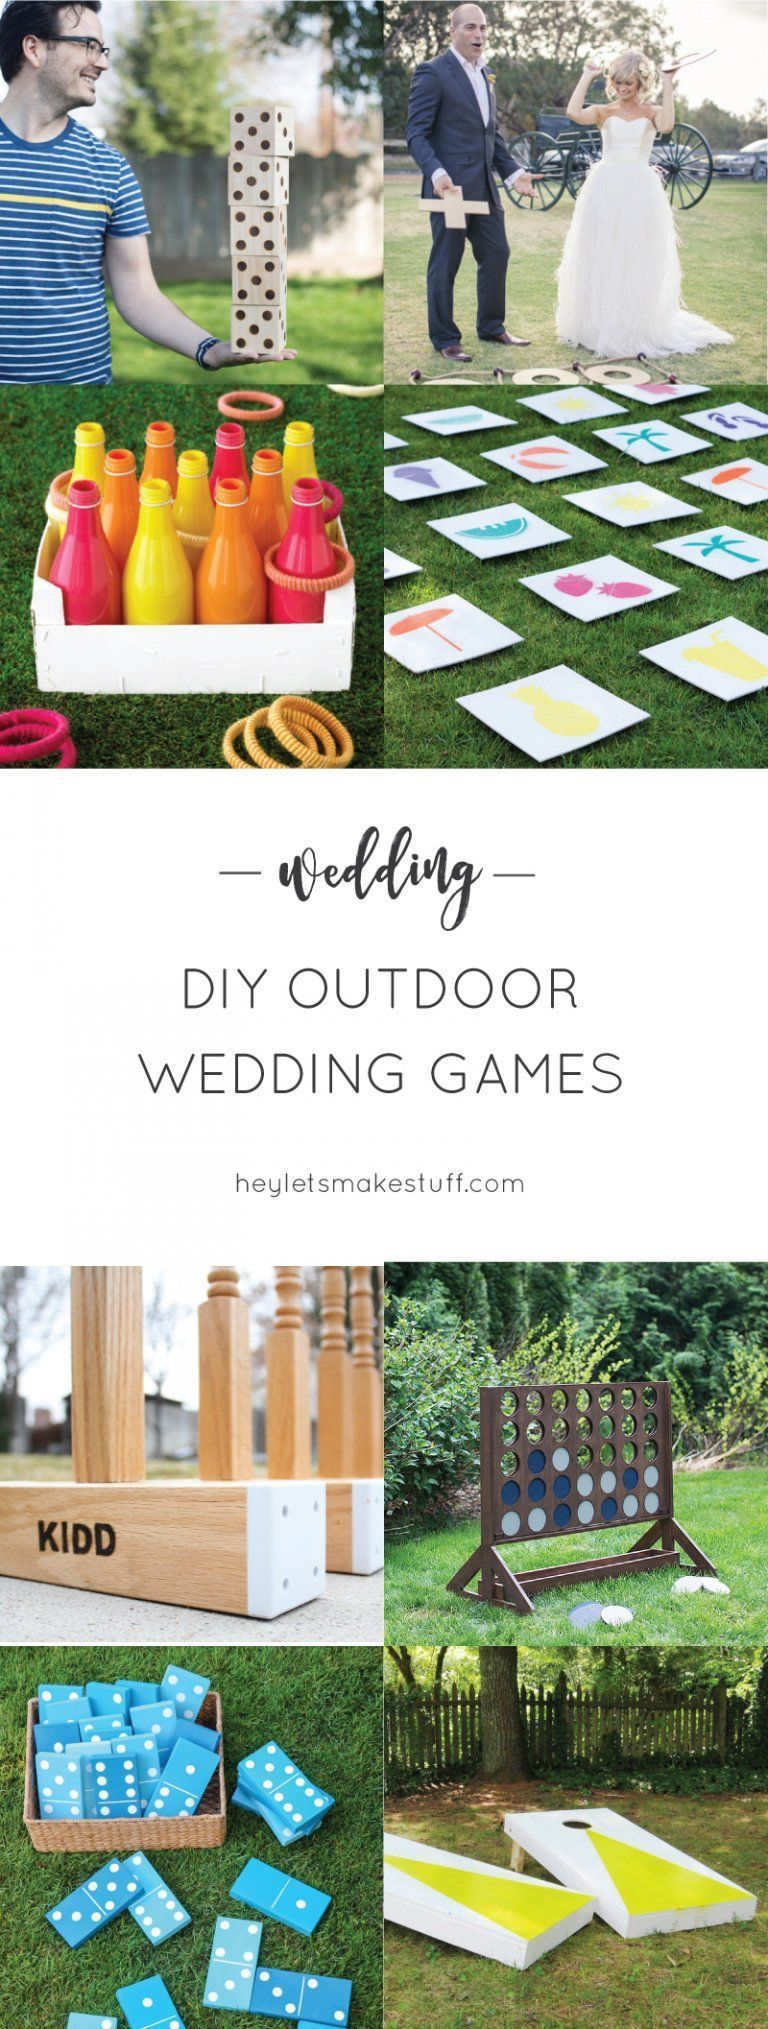 DIY Outdoor Wedding Games If you're having an outdoor wedding, lawn games are a fun way to make sure your guests are totally entertained! Great for cocktail hours and receptions. #thegreatoutdoors